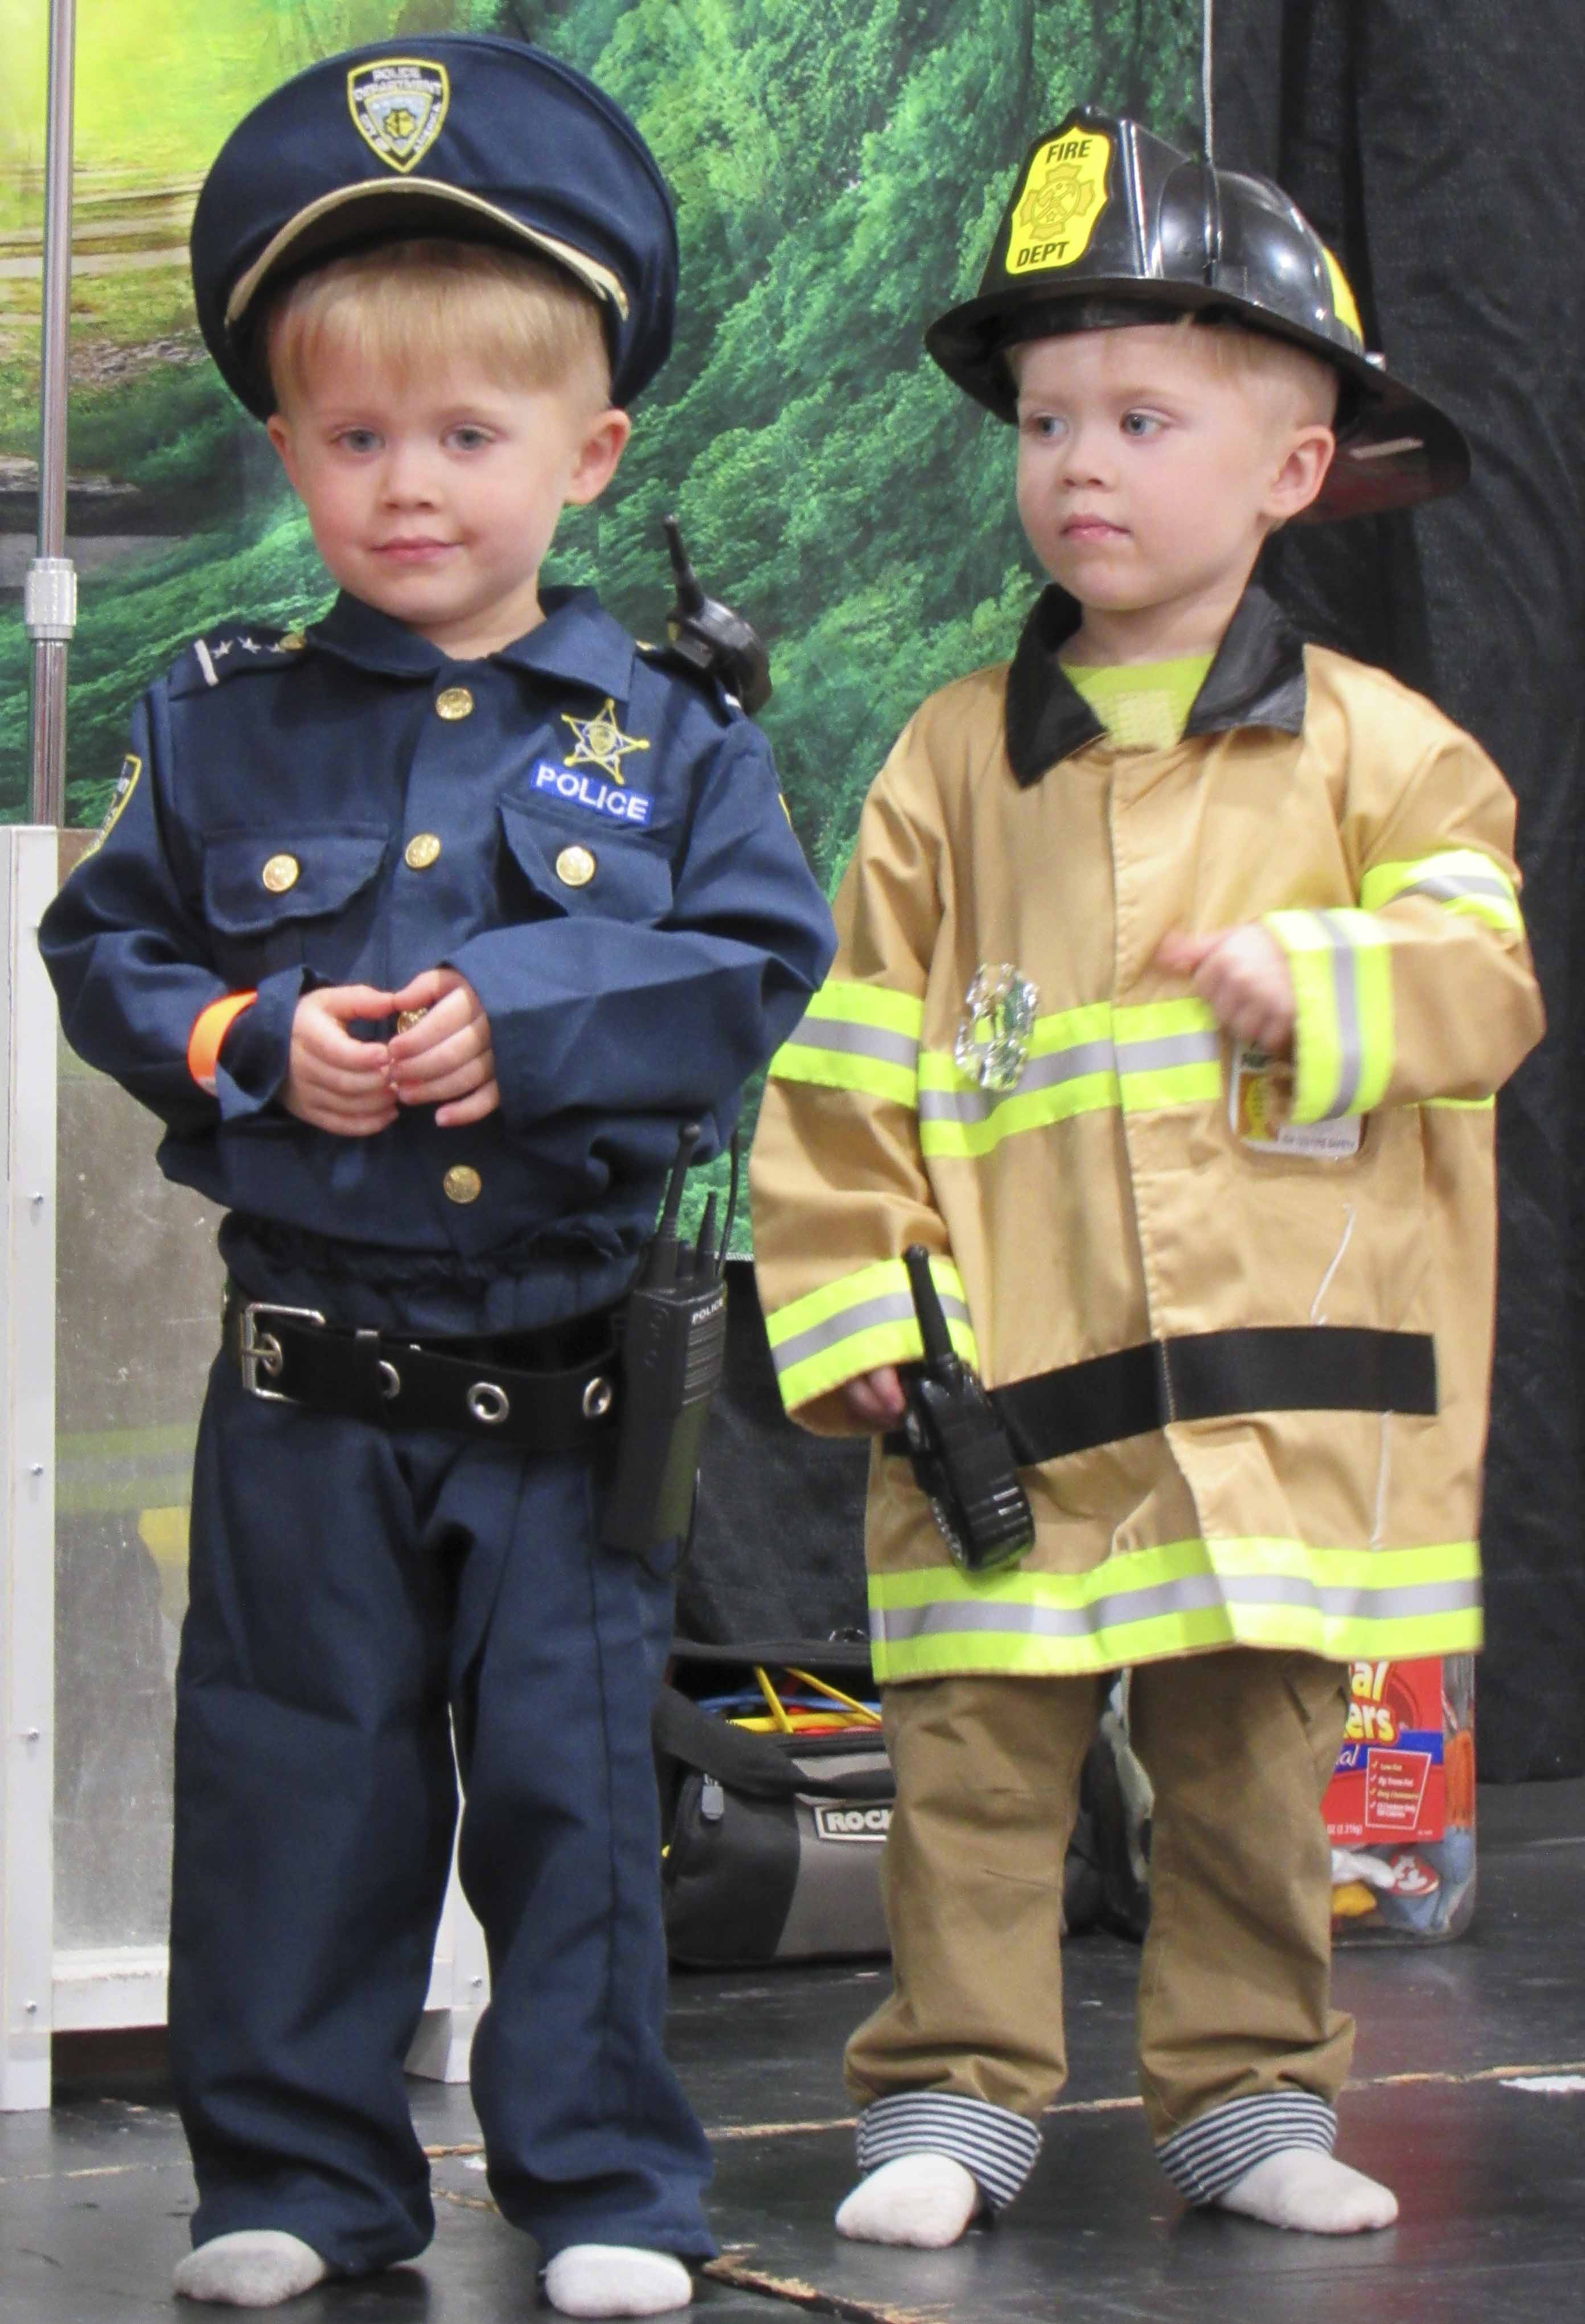 Brothers Mason and Noah Brus of Martelle showed their support for public officials, dressed as a police officer and firefighter.